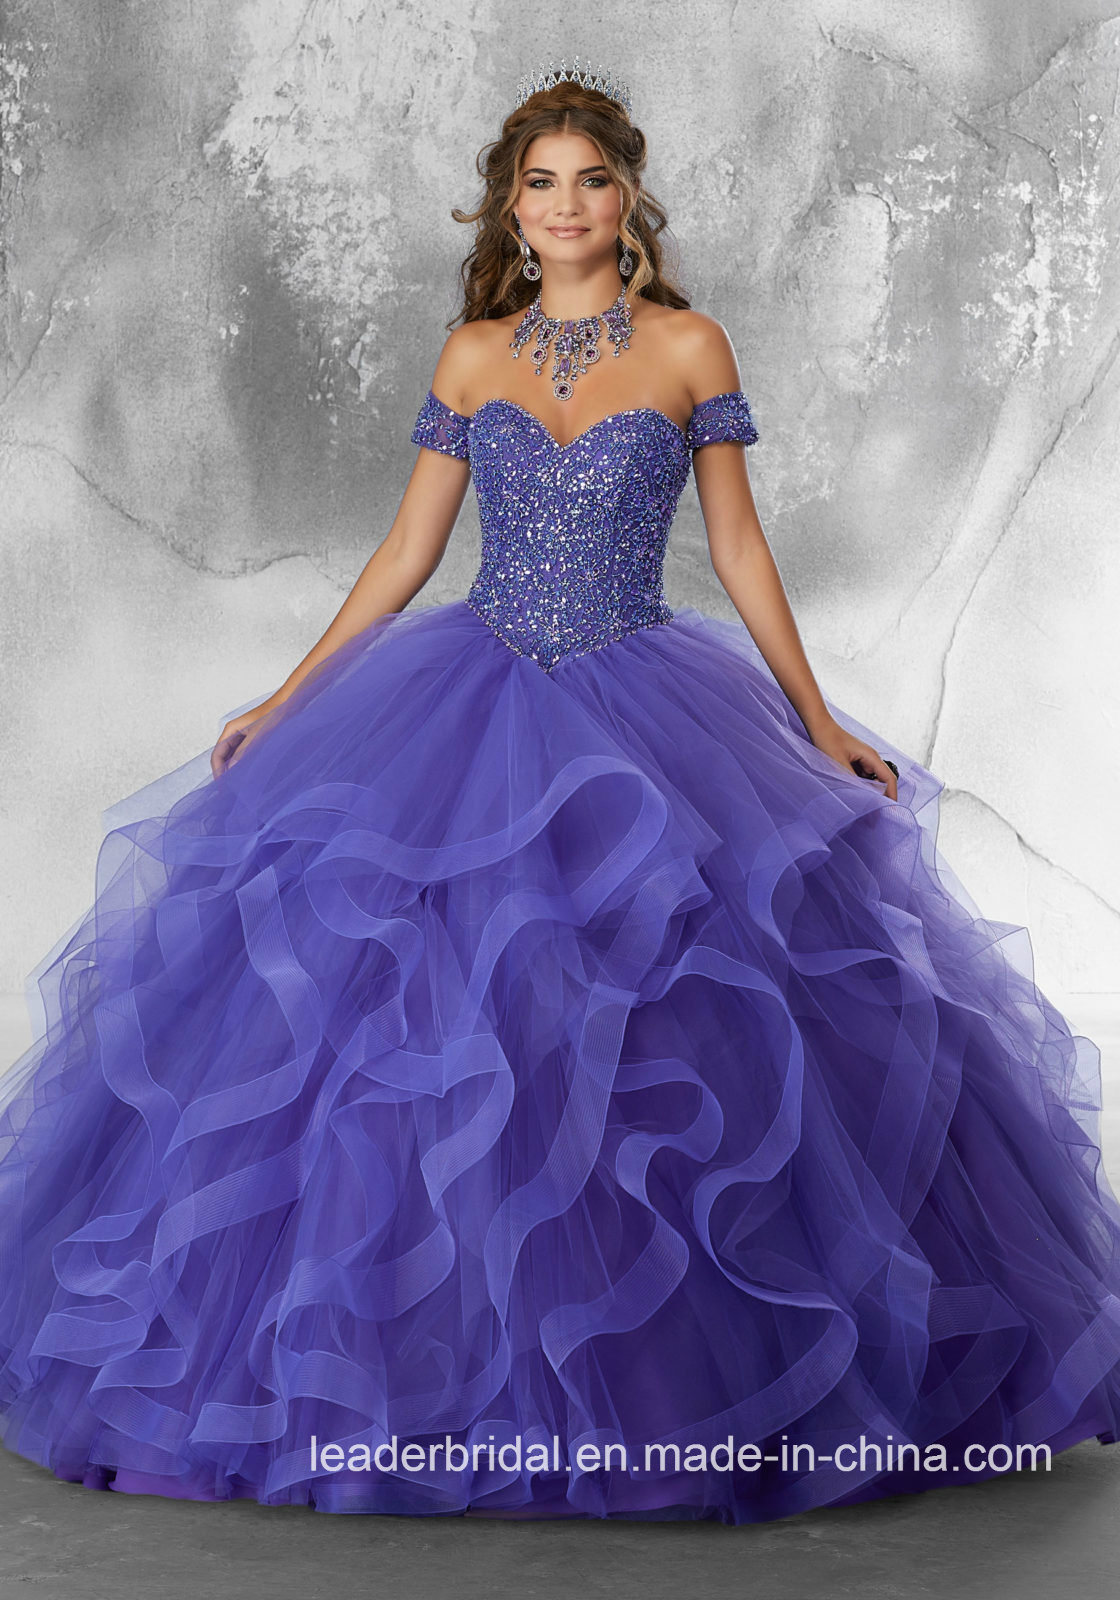 3ebdd6104d8 China Purple Quinceanera Dress Ball Gown Beaded Tulle Prom Dresses Q205 -  China Quinceanera Dress